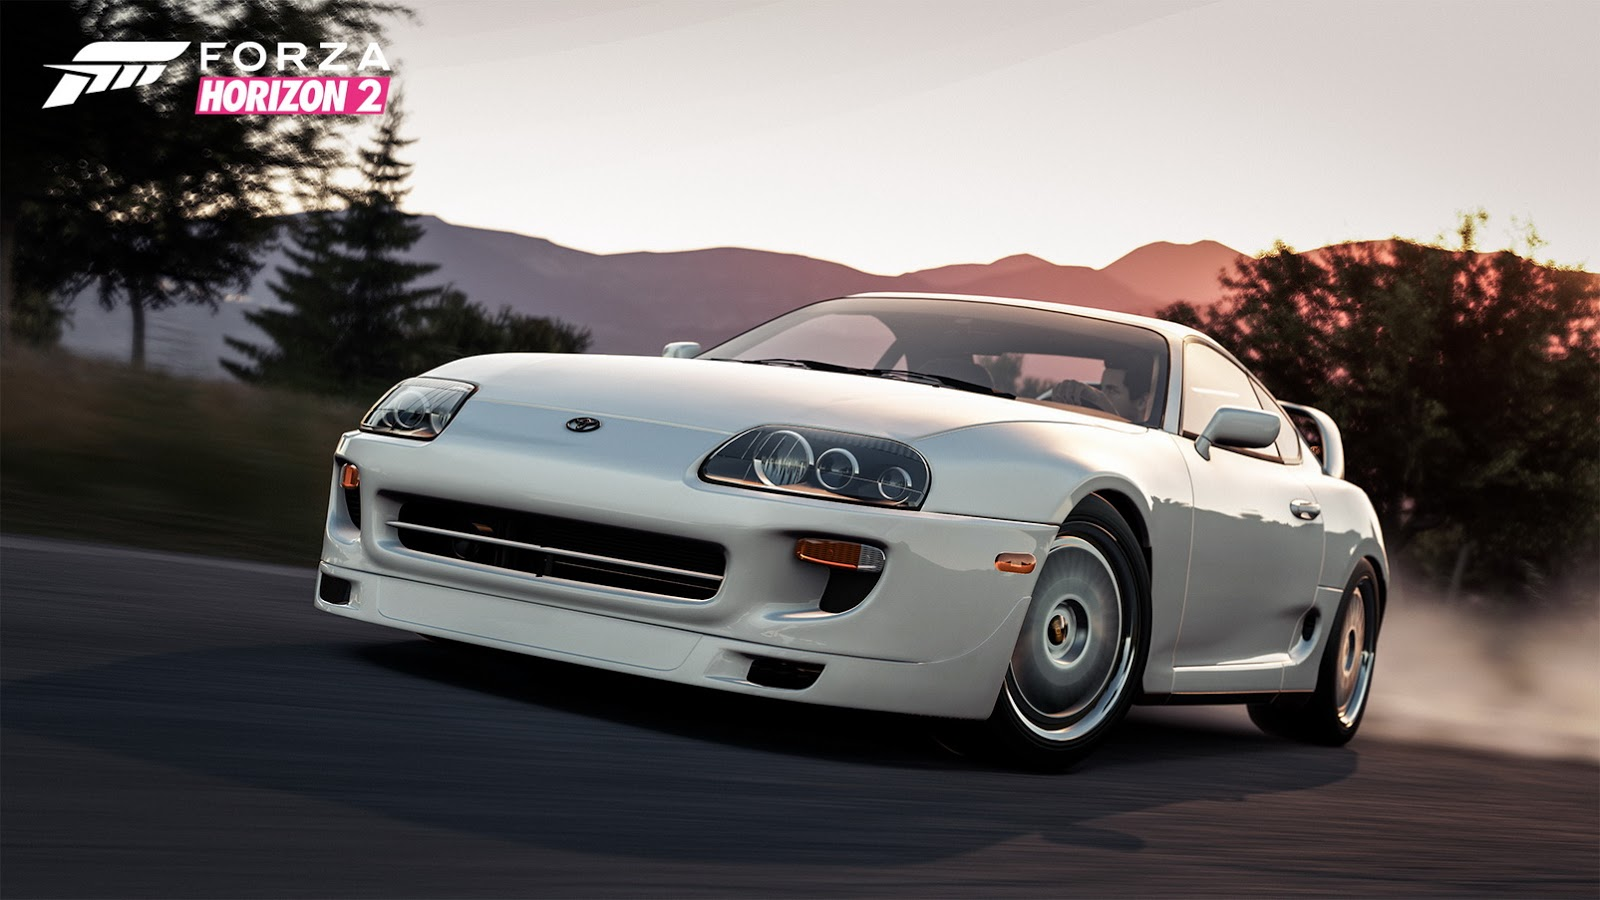 ... and Furious 7 Will Spawn Eight Special Edition Cars in Forza Horizon 2